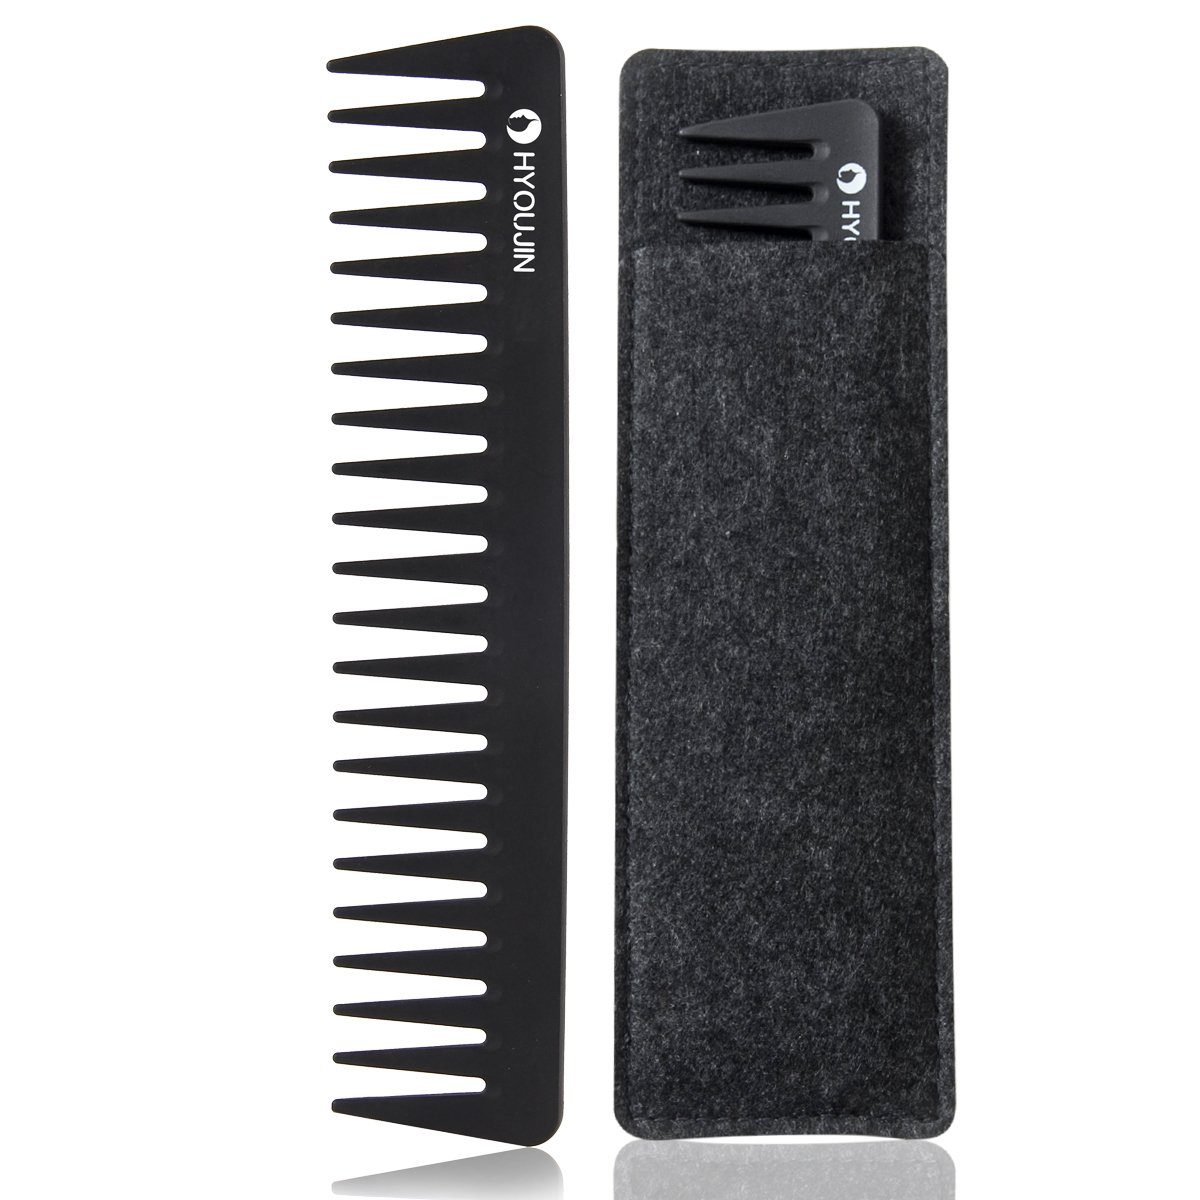 HYOUJIN608 Black Carbon Metal Pintail Teaser Comb, Rattail Lift Comb, Sharp Tail Comb with Non-skid Paddle-Perfect Lifting Fluffing-Incredibly Lightweight, Anti static, Heat Resistant DR